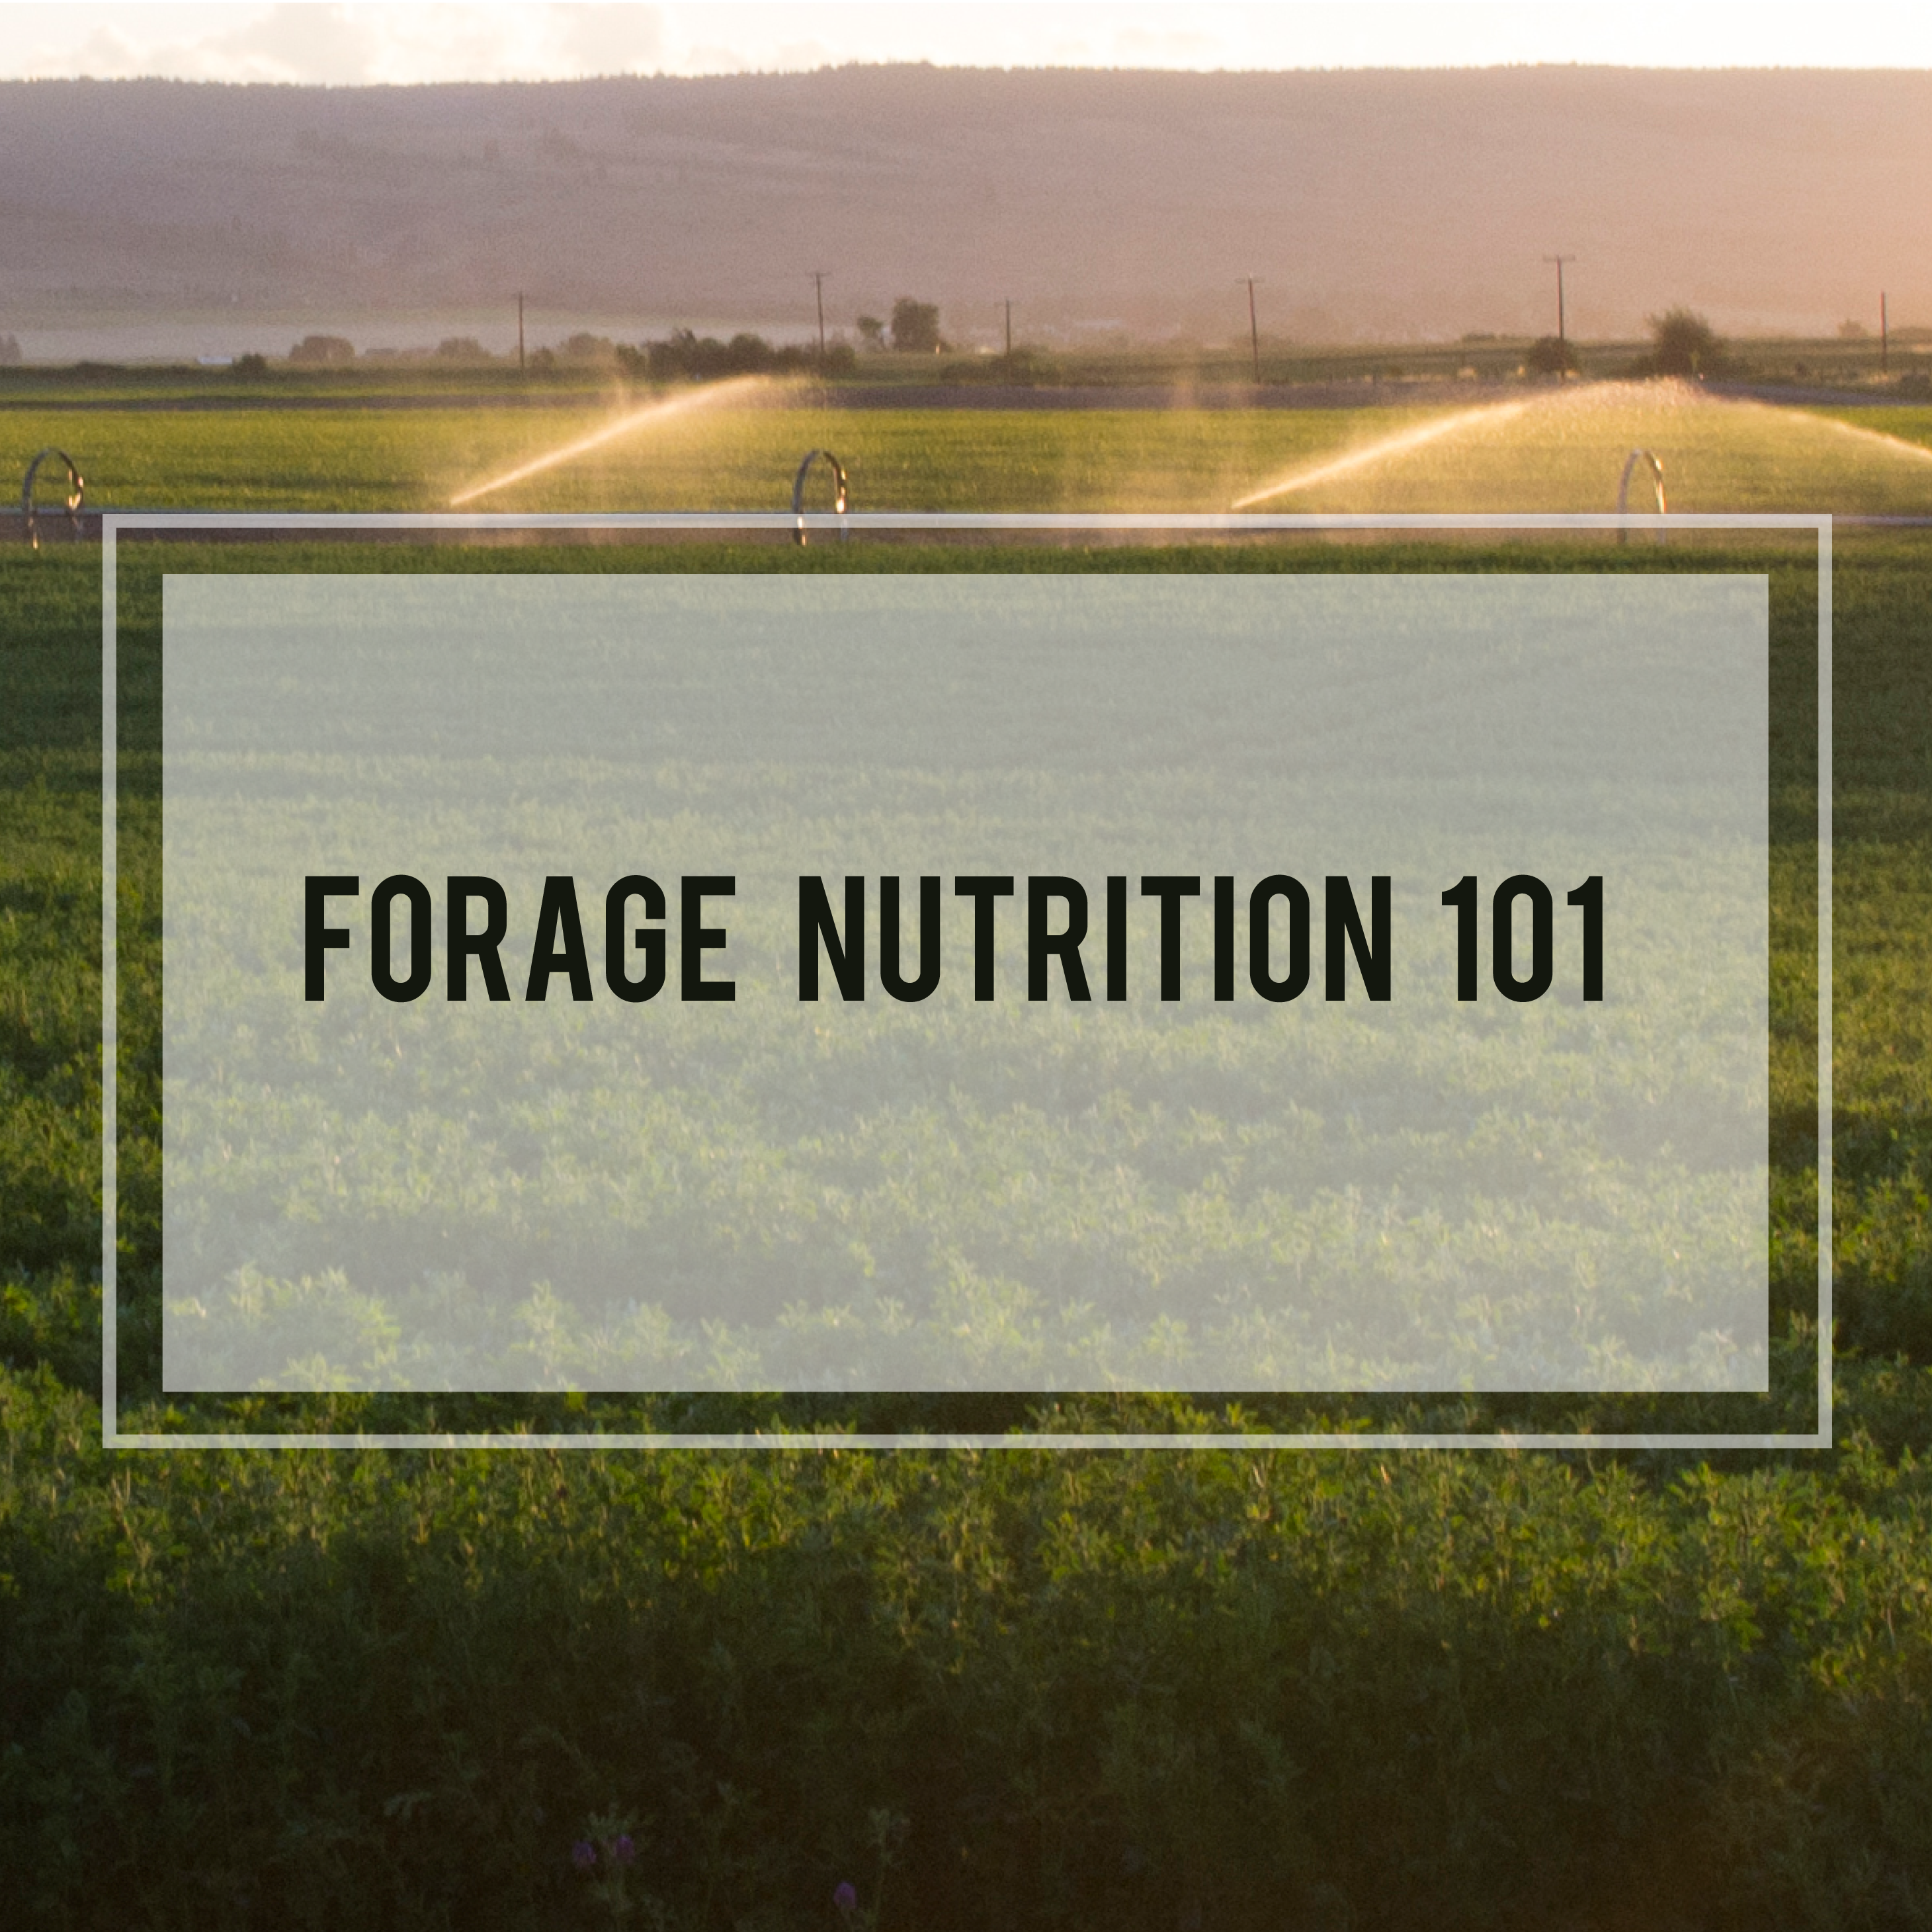 Forage Nutrition 101: Nitrates